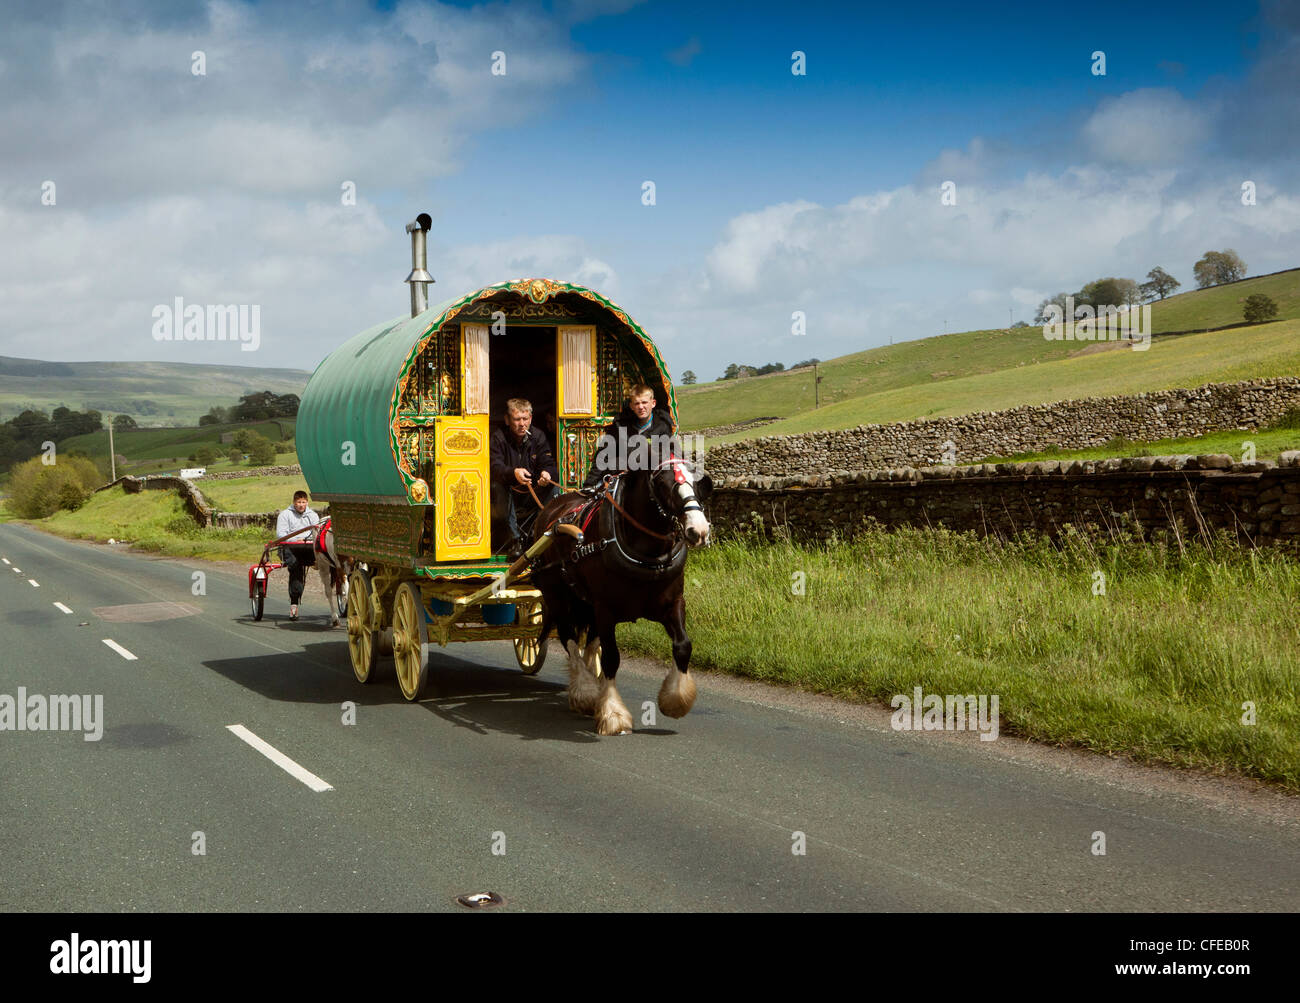 UK, England, Yorkshire, Wensleydale, Hawes, traditional Romany horse drawn caravan on road to Appleby Horse Fair - Stock Image